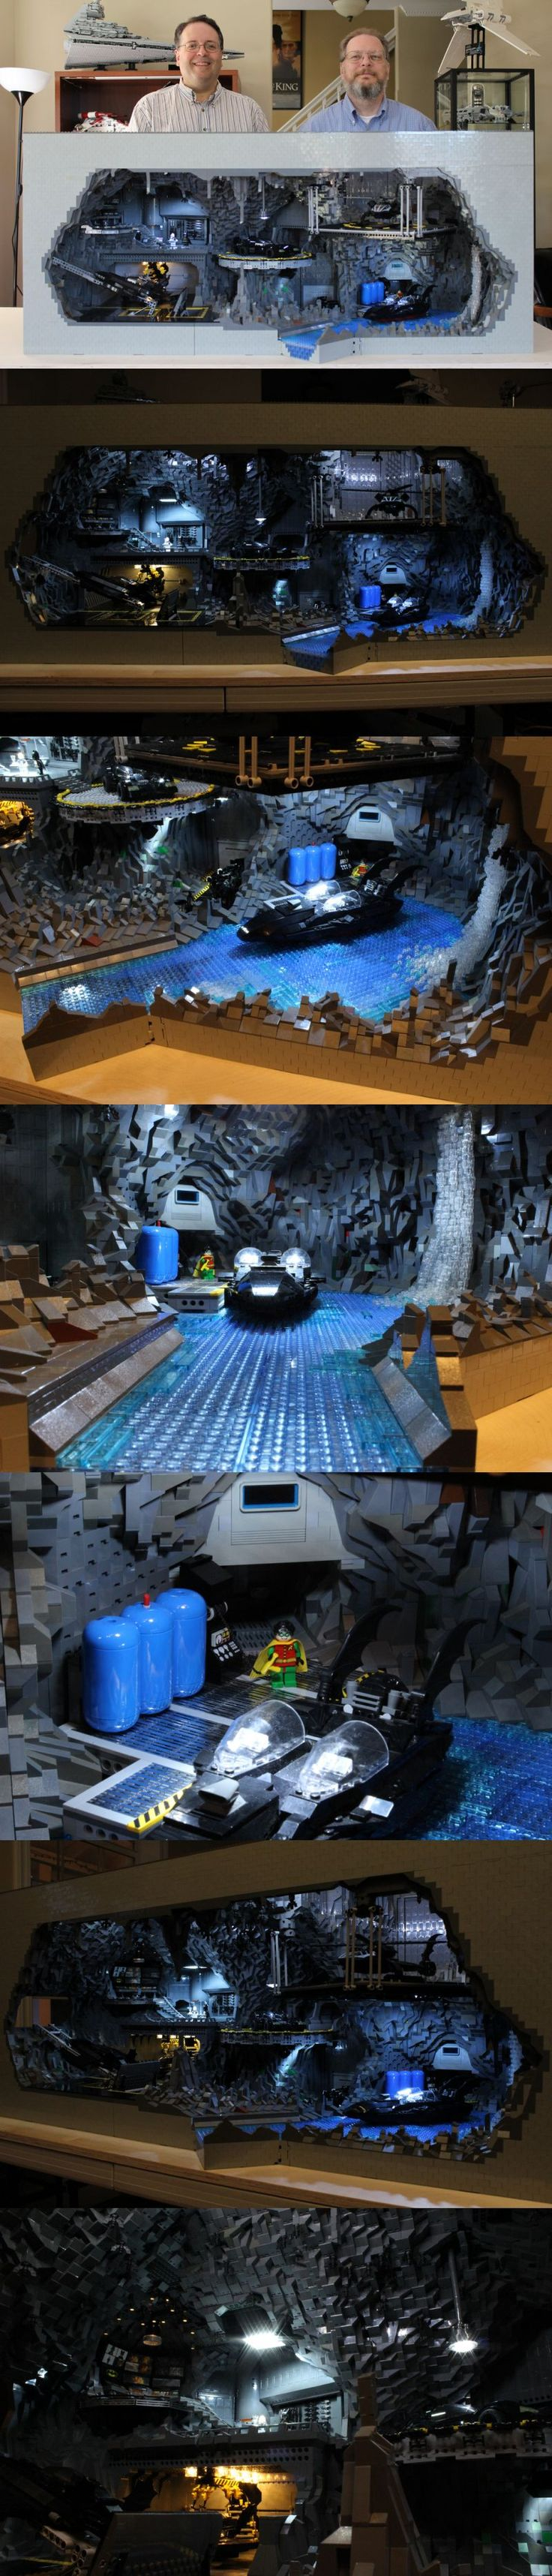 Epic LEGO Batcave Created Out Of 20,000 LEGO Pieces #PinYourResolution